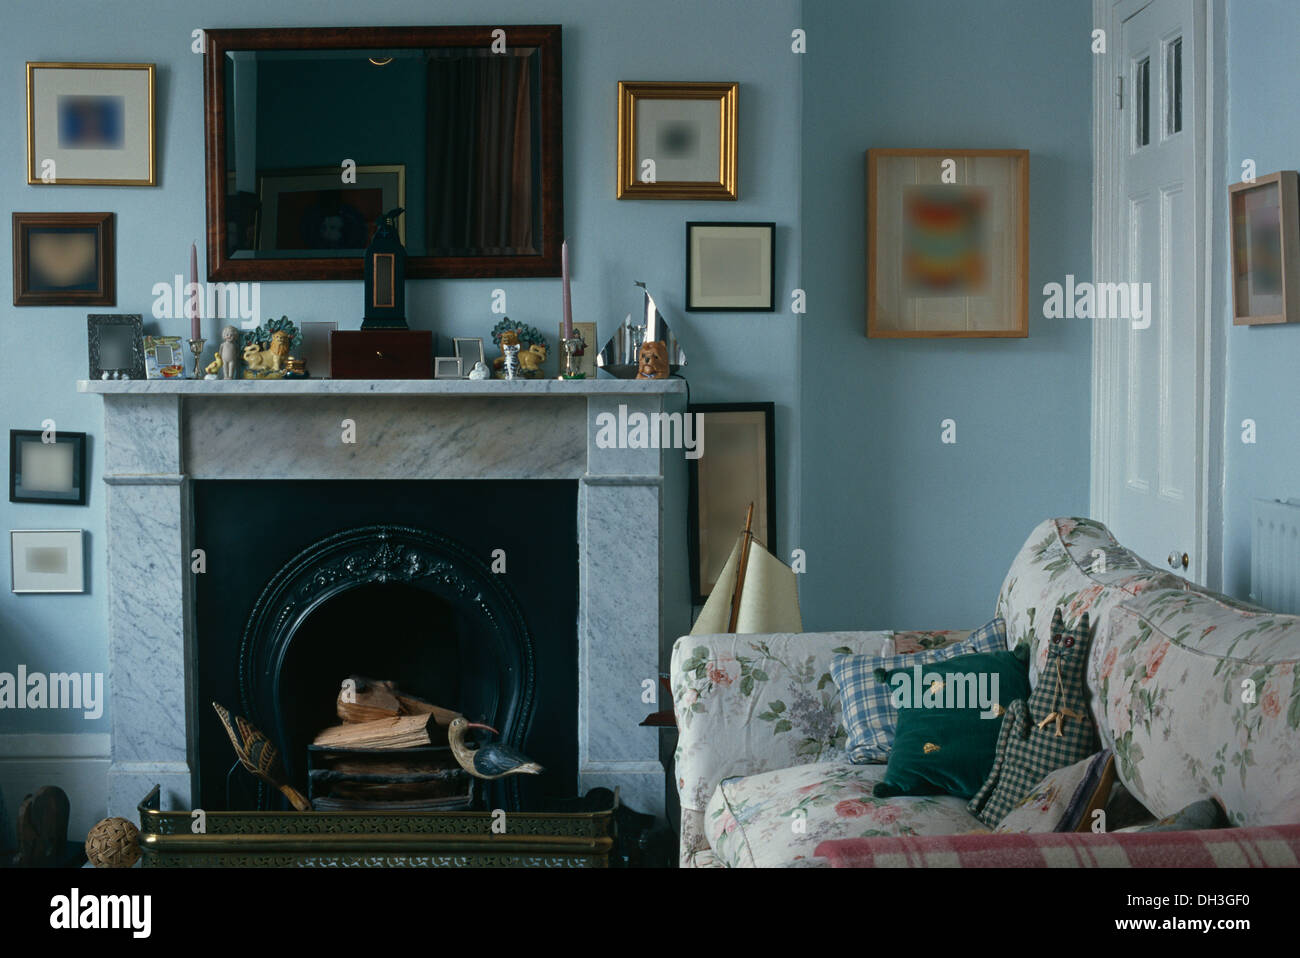 Mahogany Mirror Above Marble Fireplace In Pale Blue Country Living Room With Floral Sofa